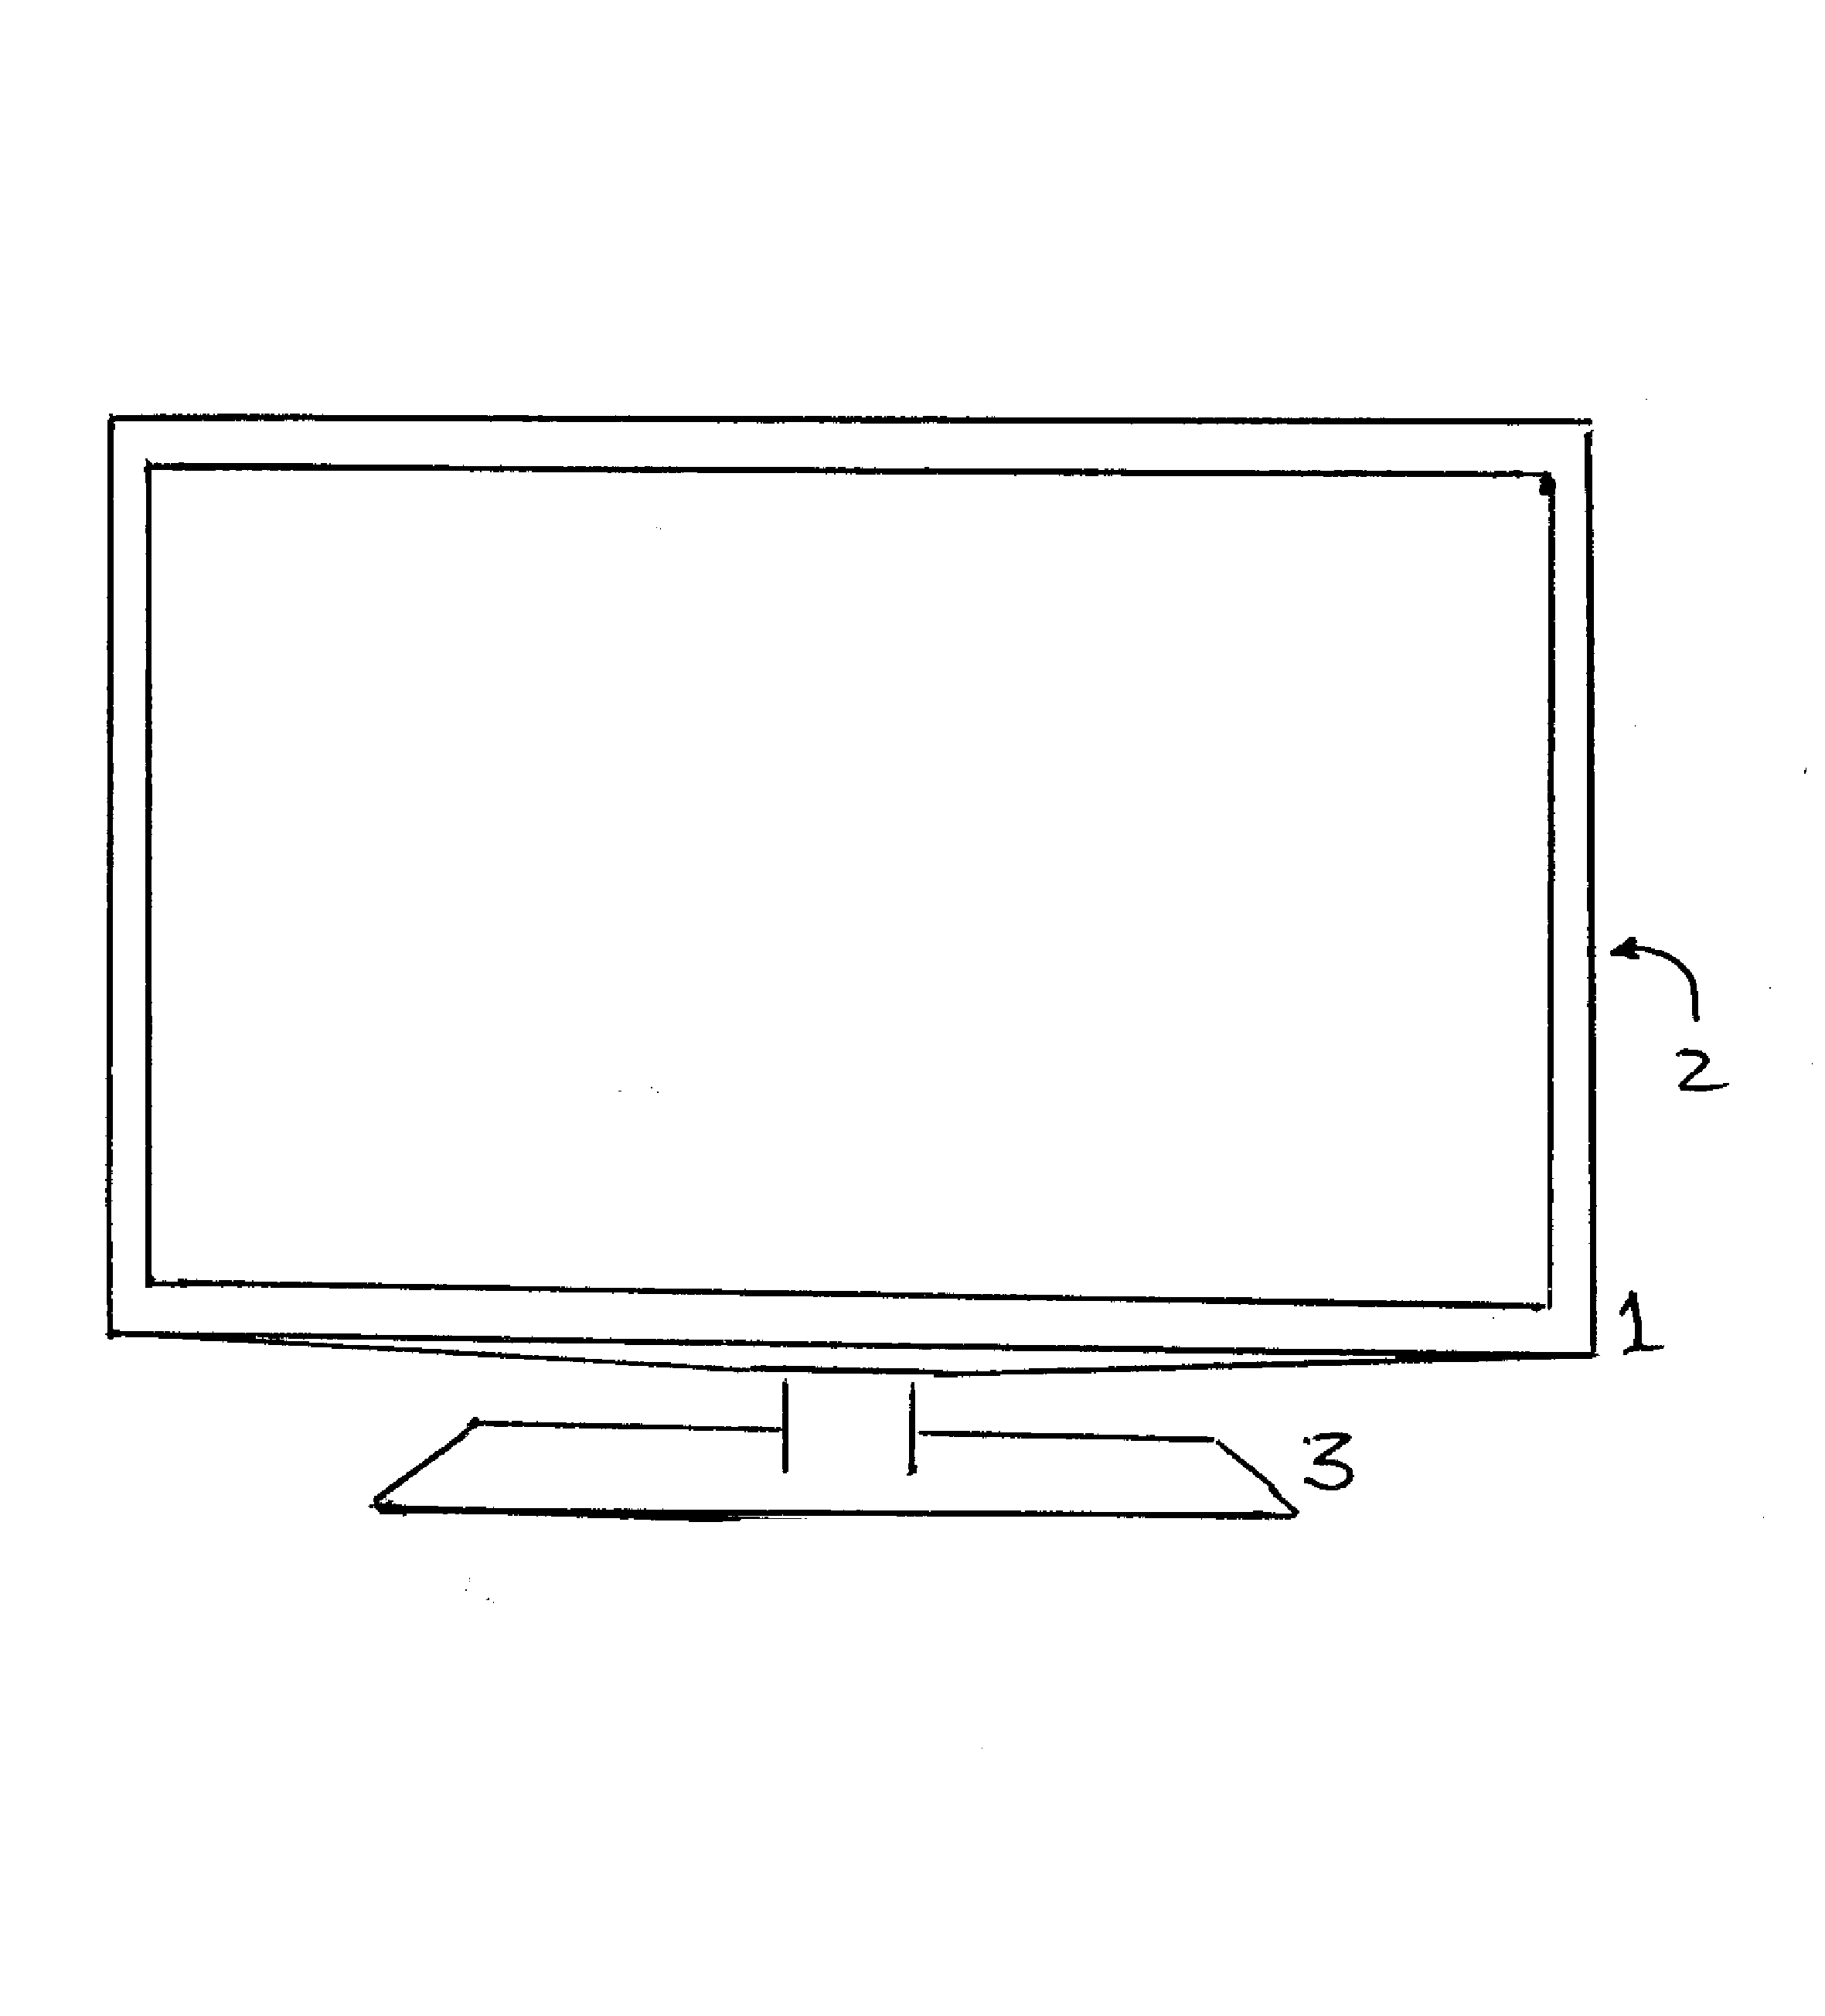 Toshiba model 50L5200U lcd television genuine parts